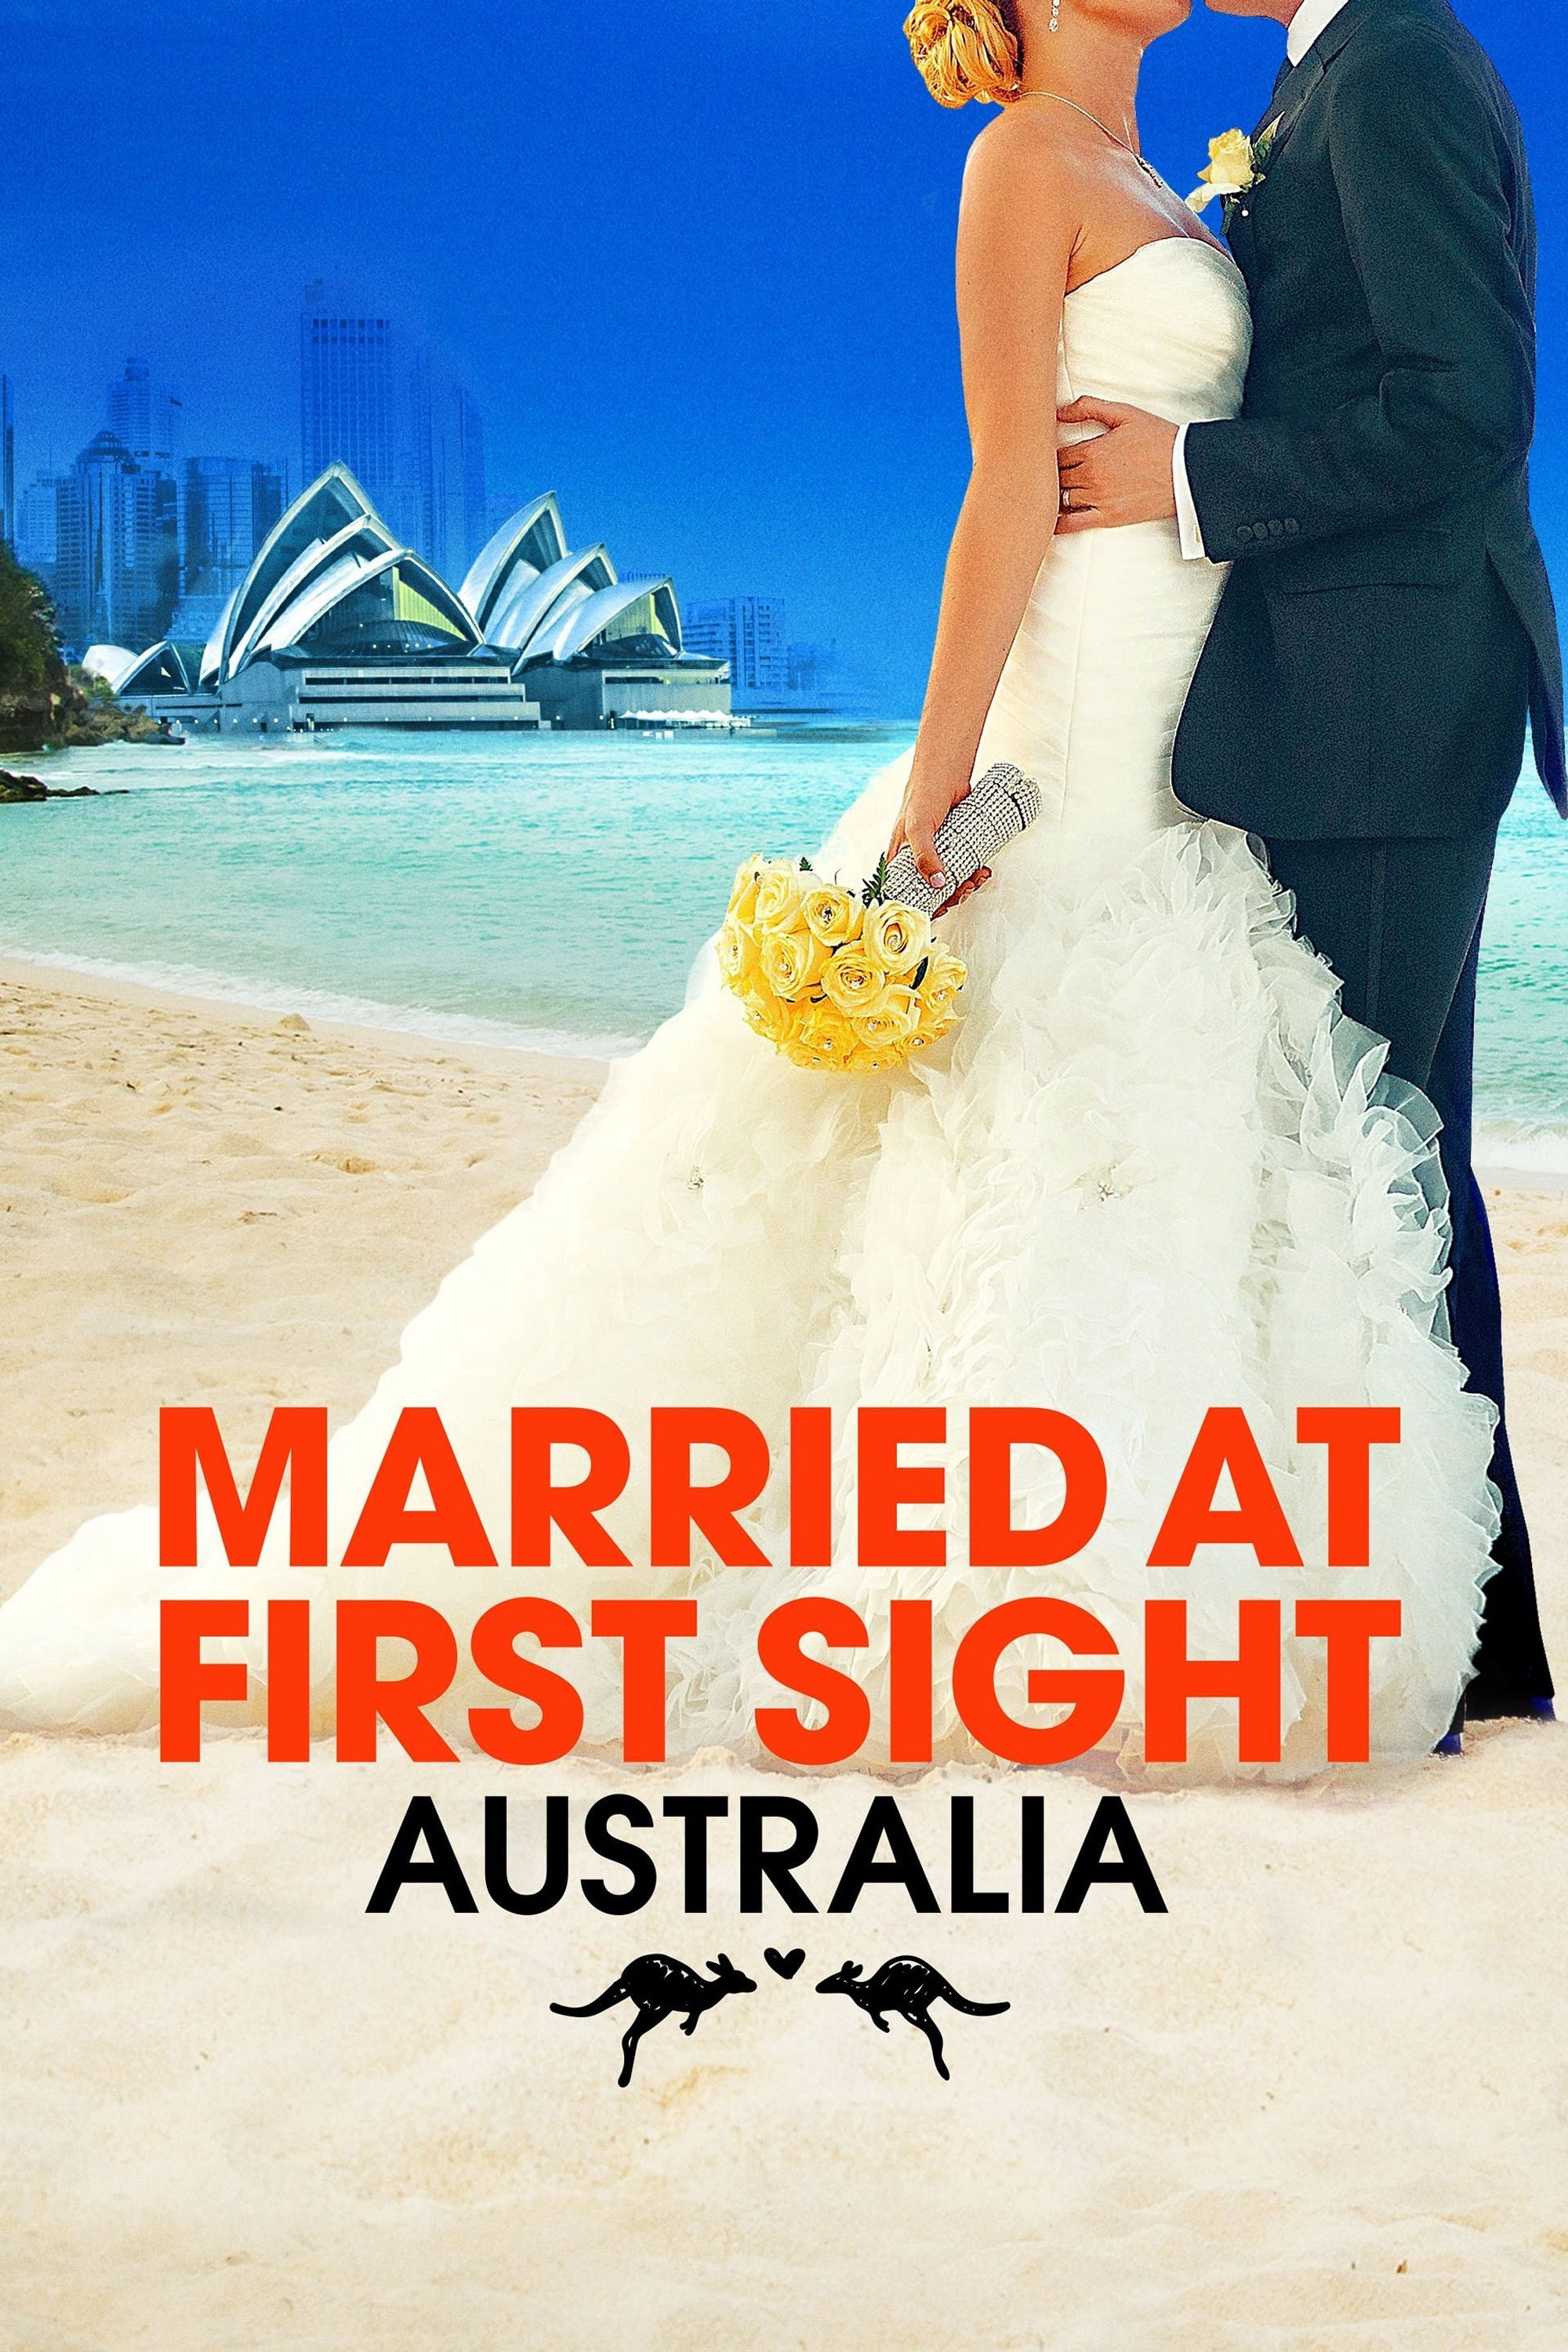 Married at First Sight Australia poster